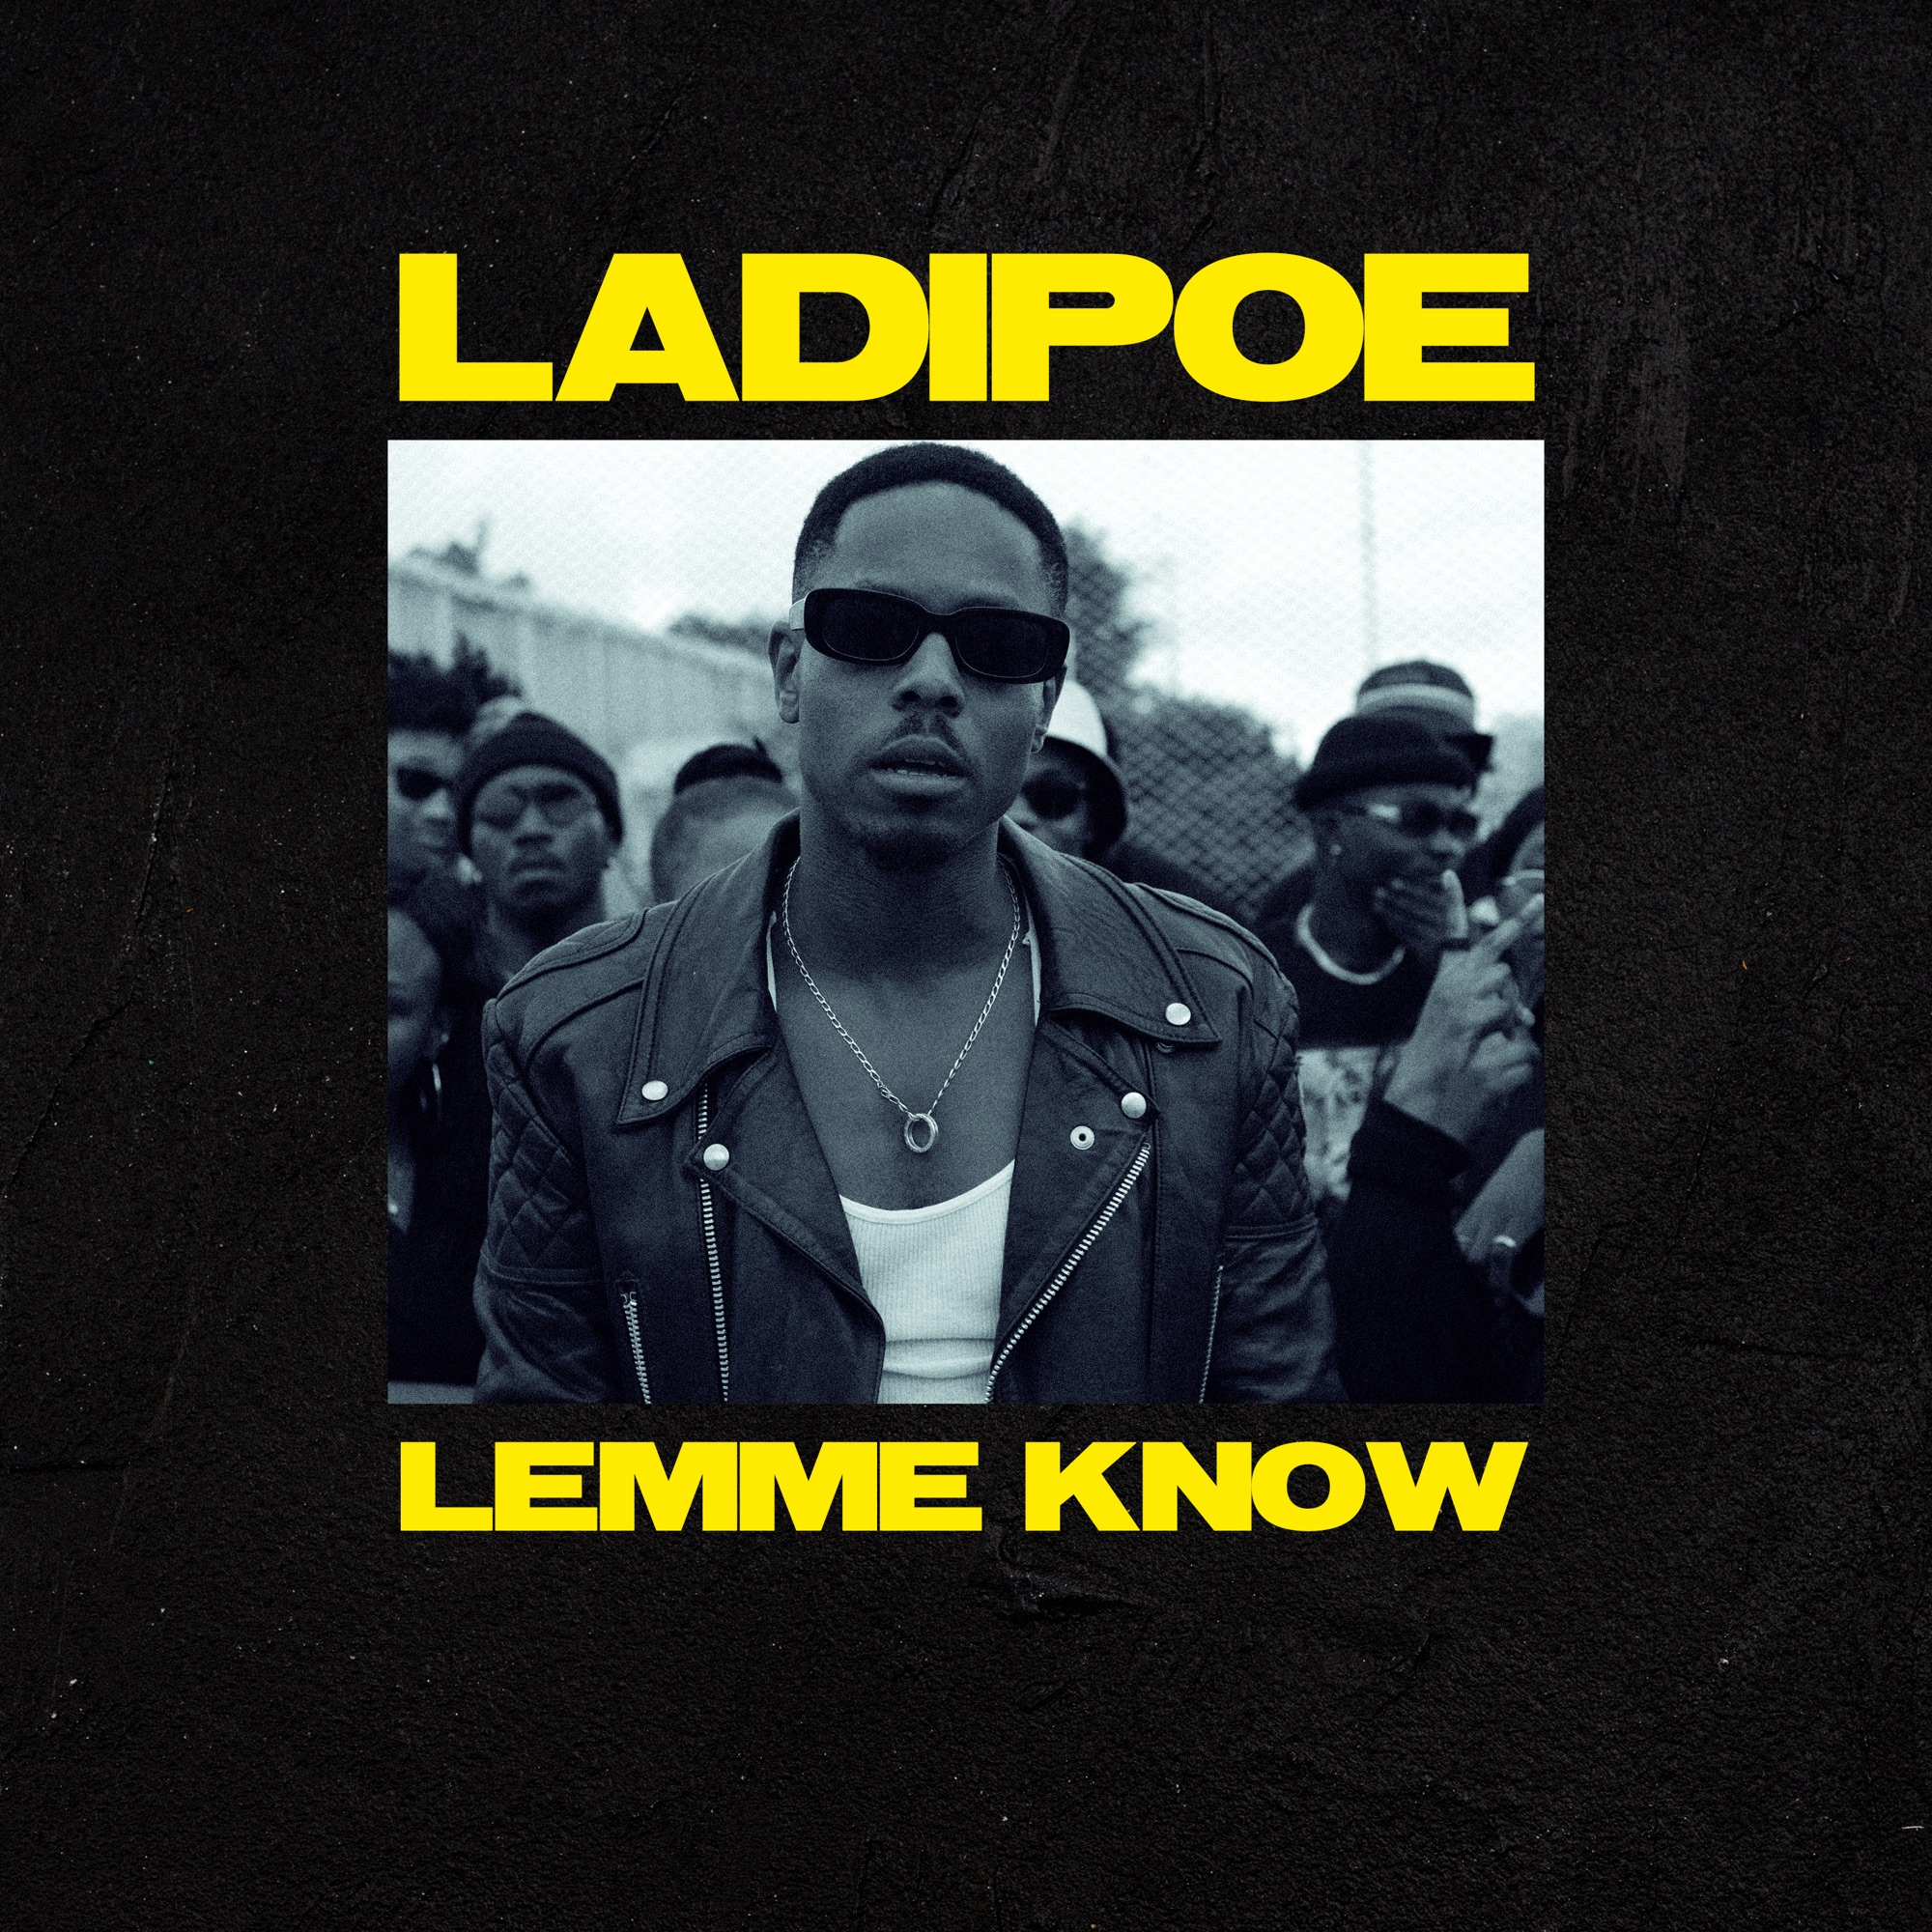 VIDEO: Ladipoe - Lemme Know